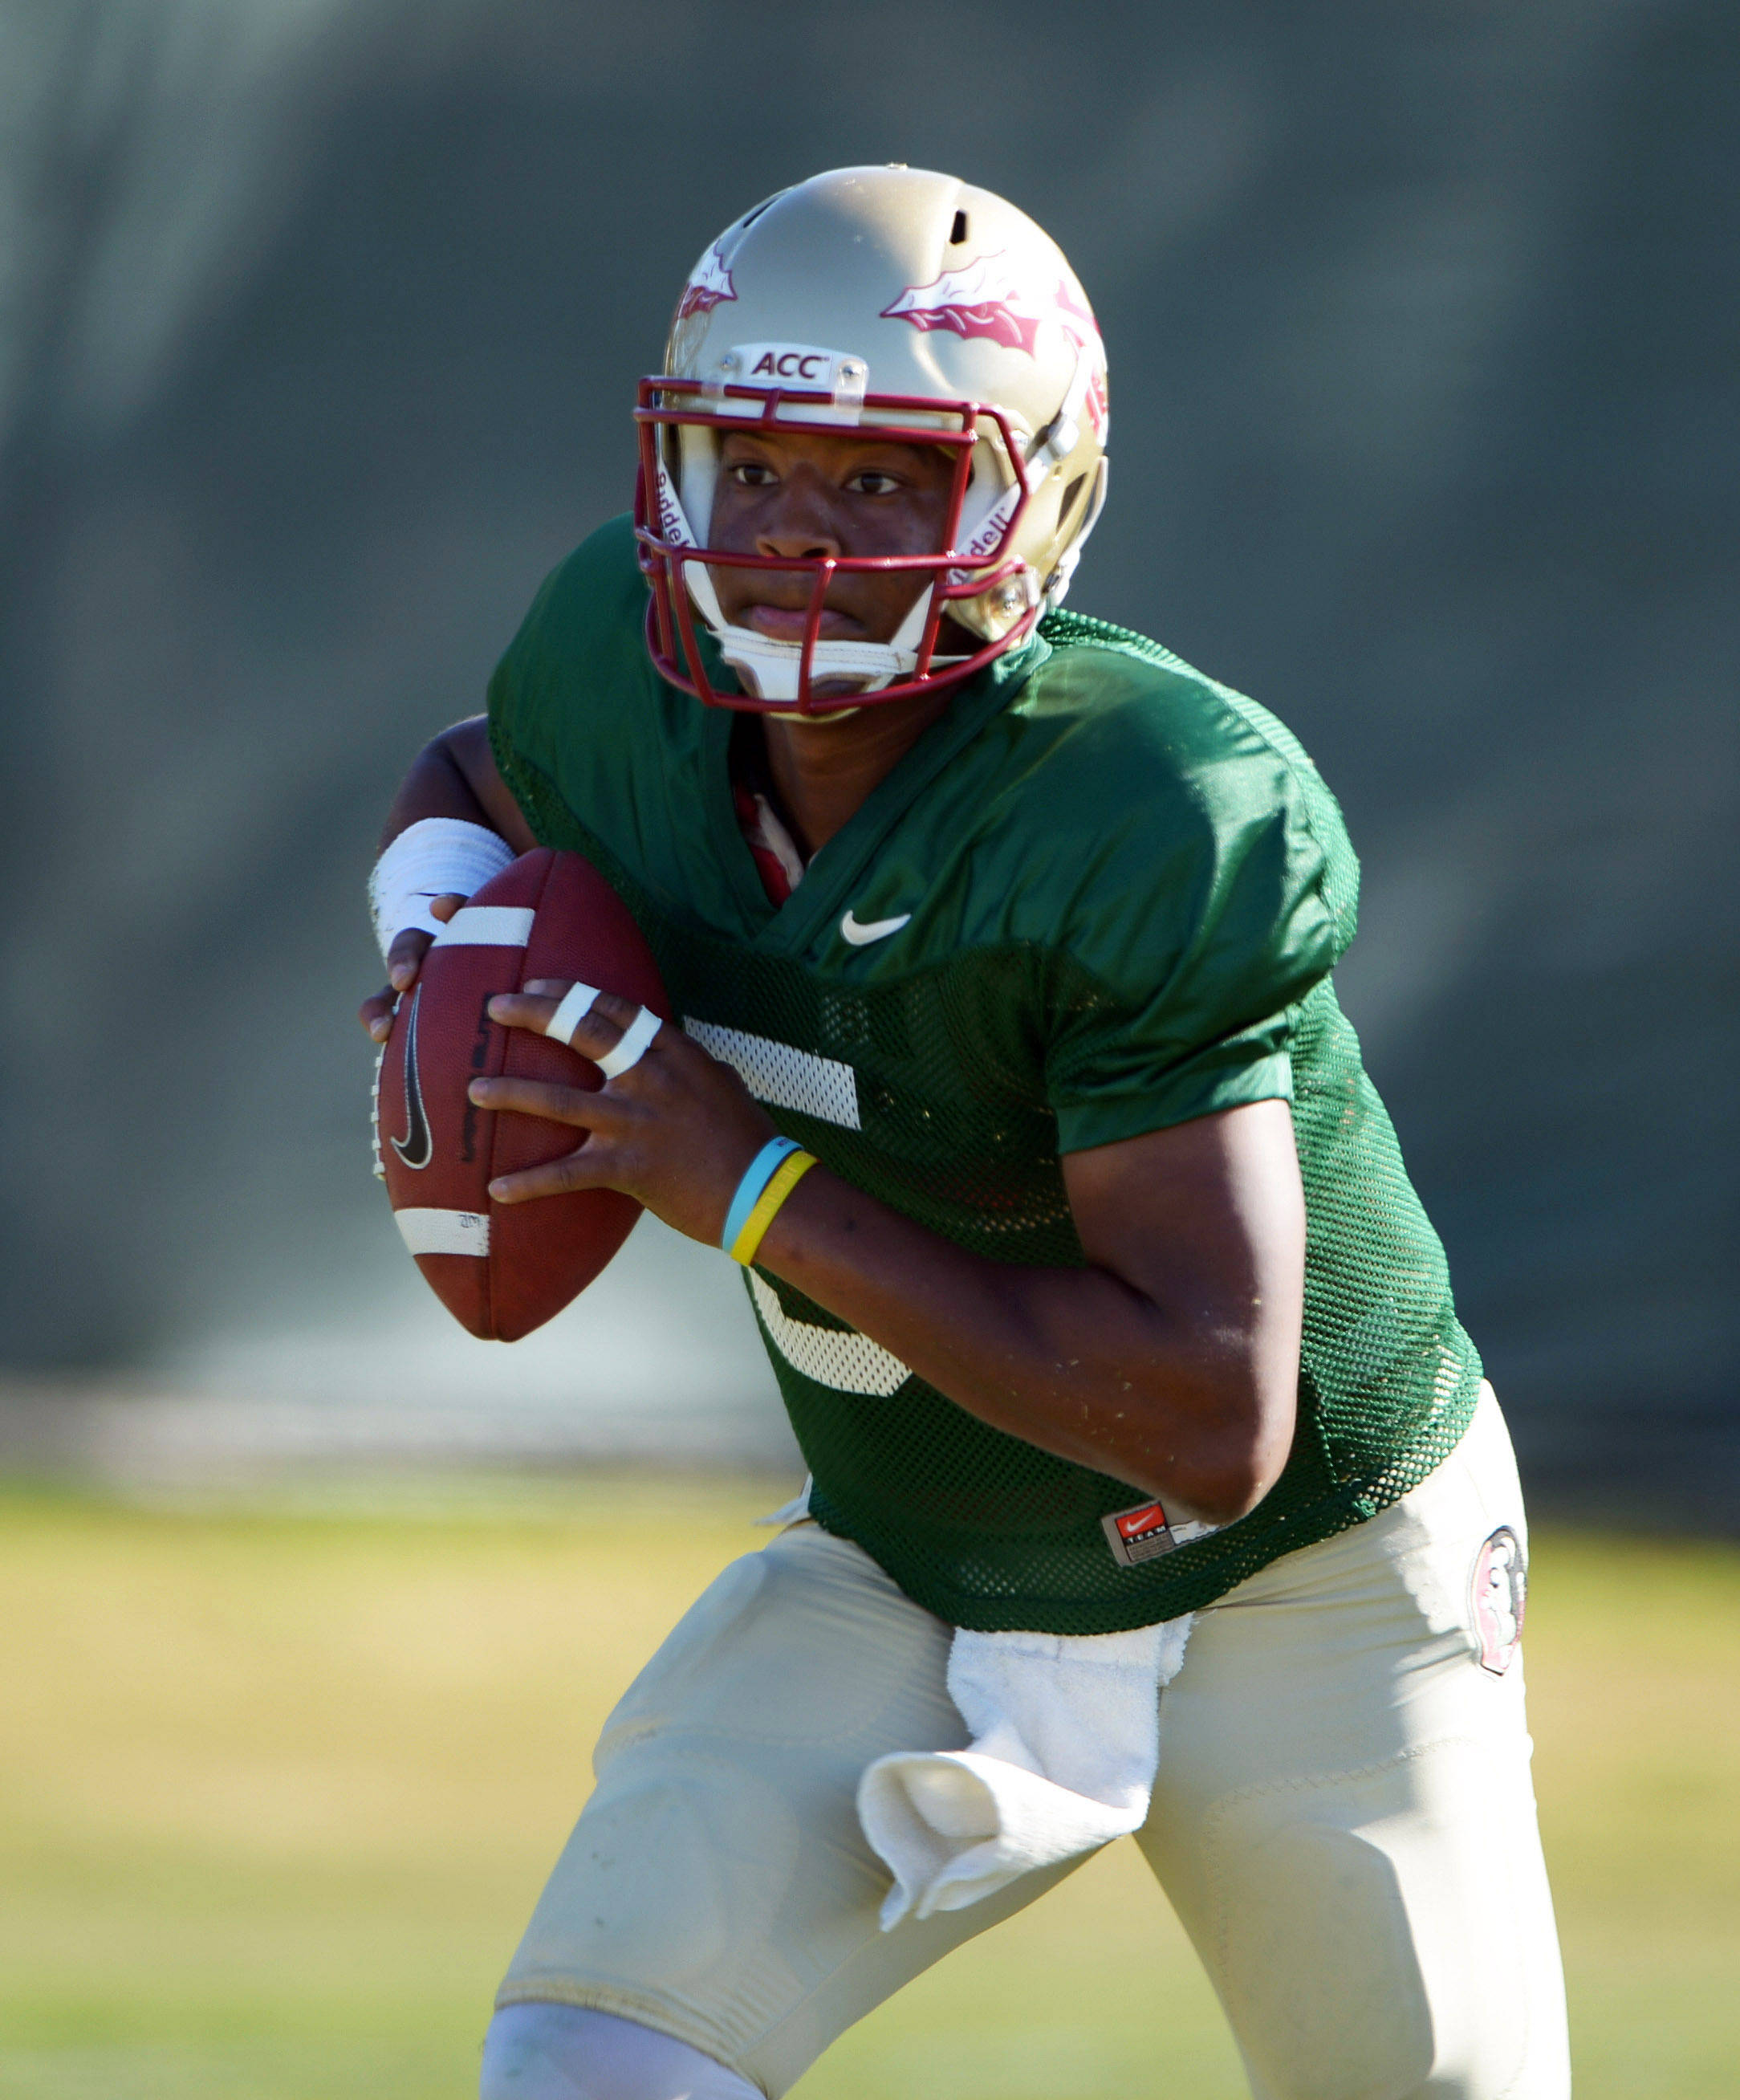 Florida State Seminoles quarterback Jameis Winston (5) throws a pass at practice for the 2014 BCS National Championship. Mandatory Credit: Kirby Lee-USA TODAY Sports